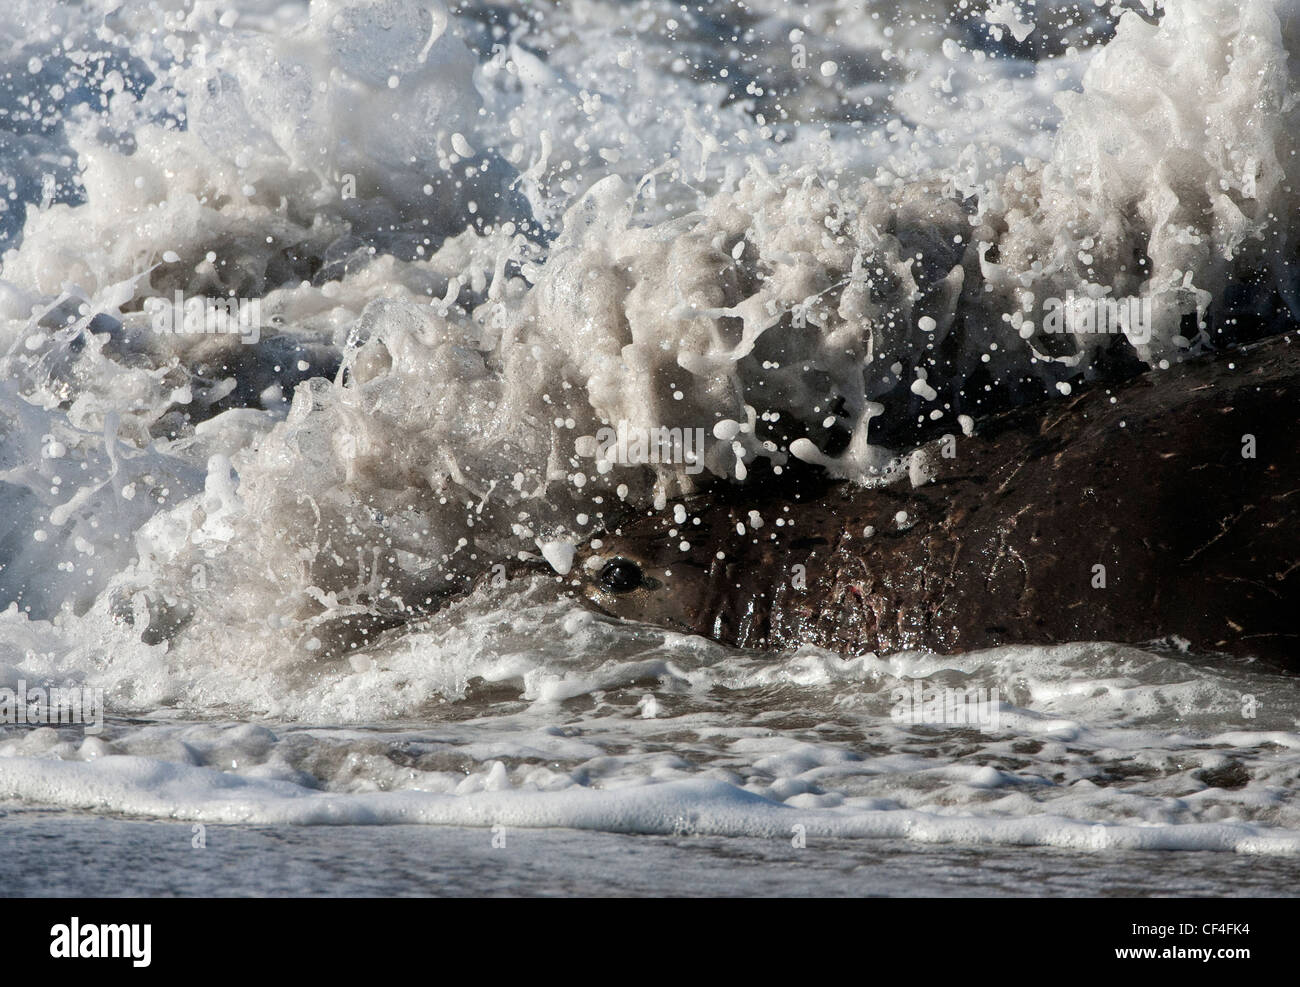 Wave Breaking over an Elephant Seal Bull - Stock Image